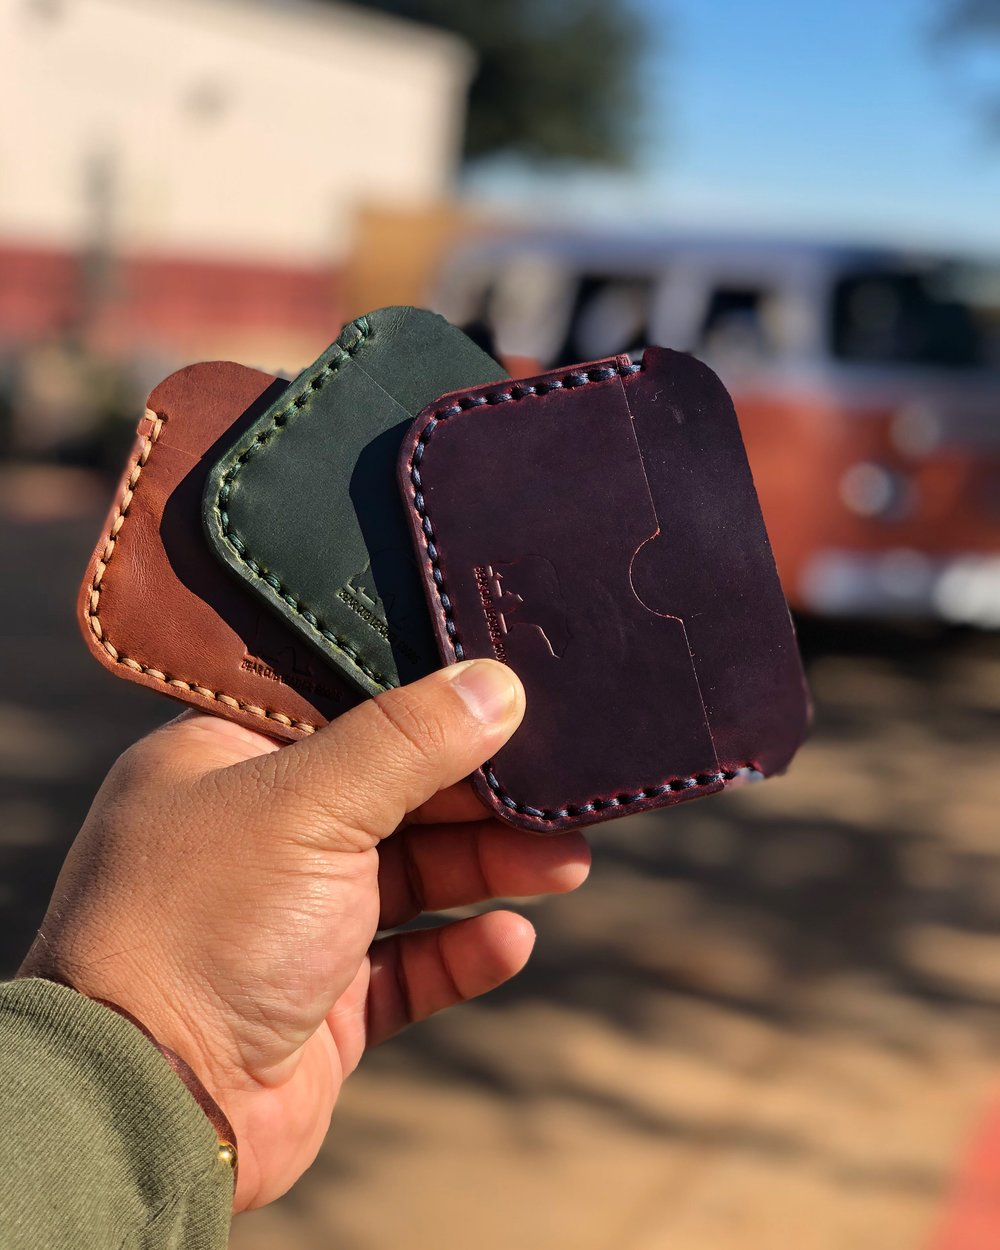 Handmade leather wallets with stitching handmade in Houston, Texas by Bear Cub Leather